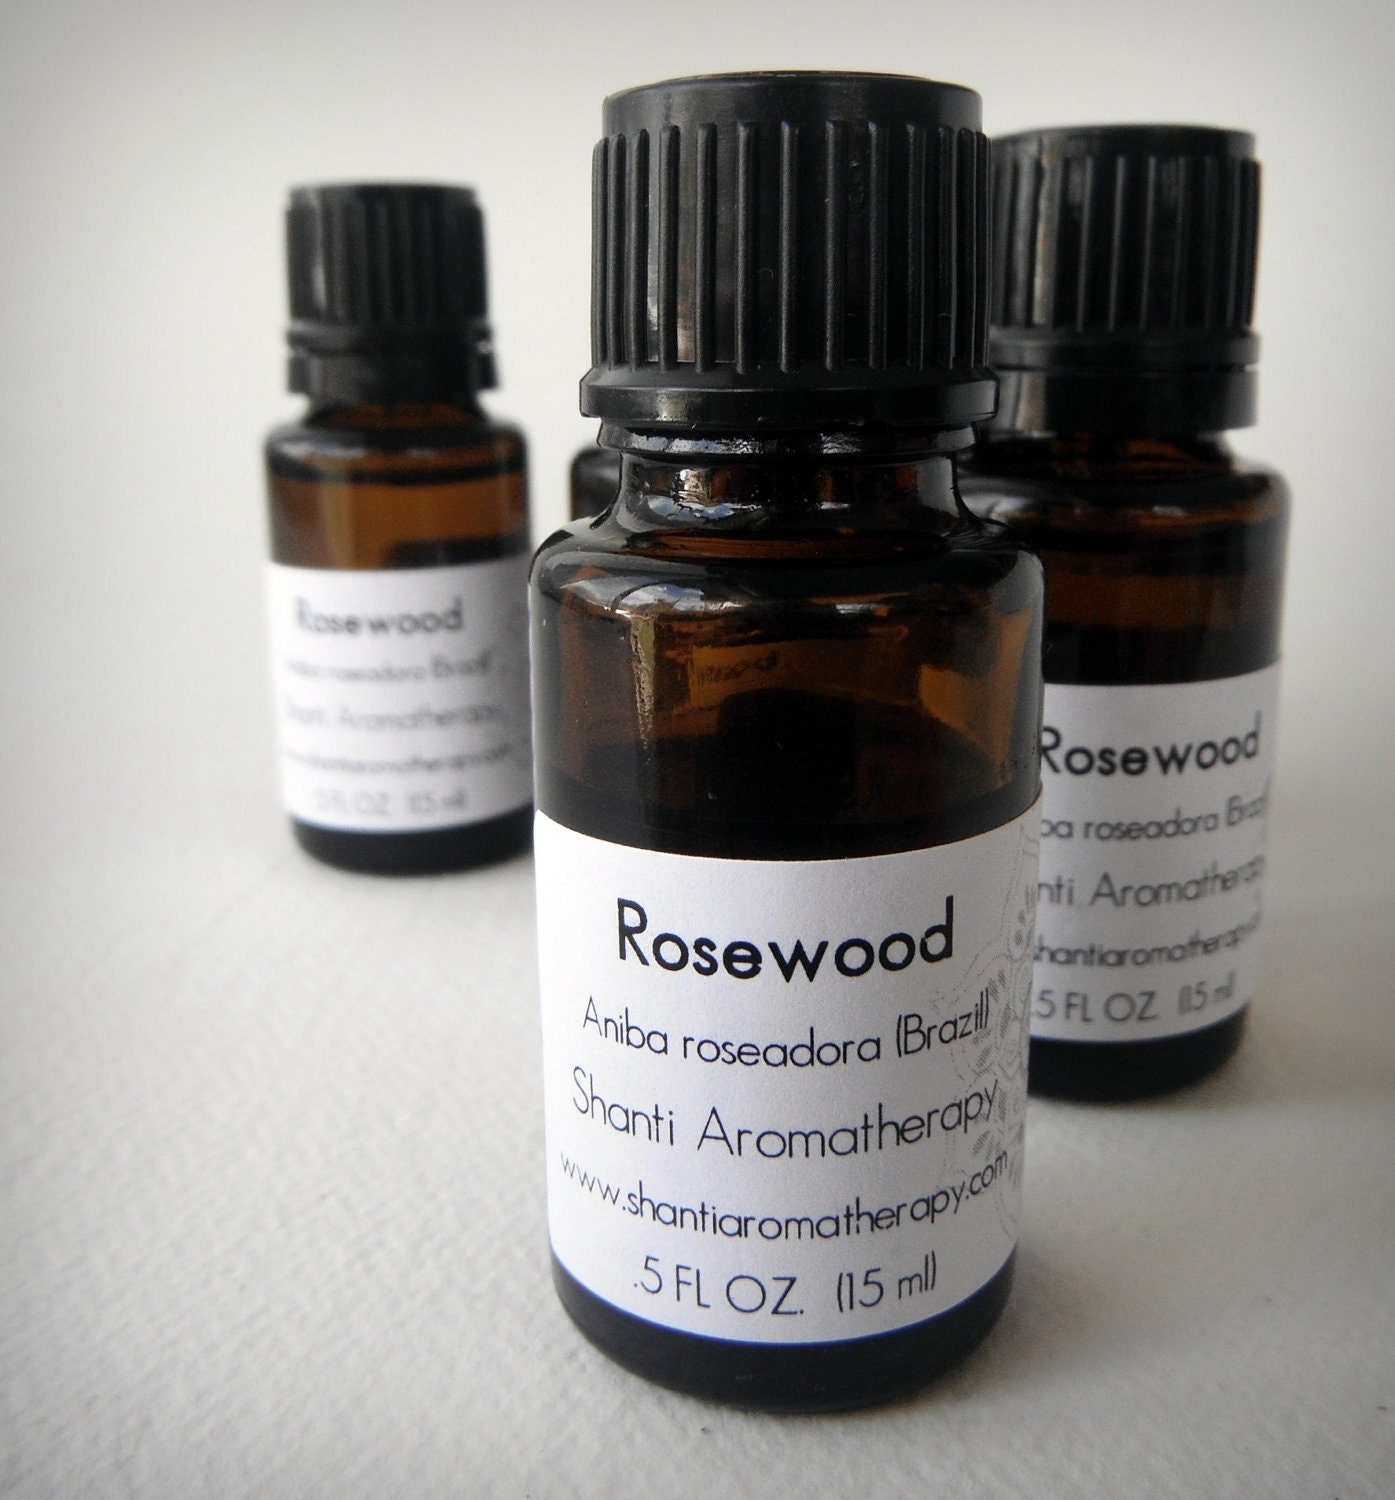 Rosewood Essential Oil - ShantiAromatherapy